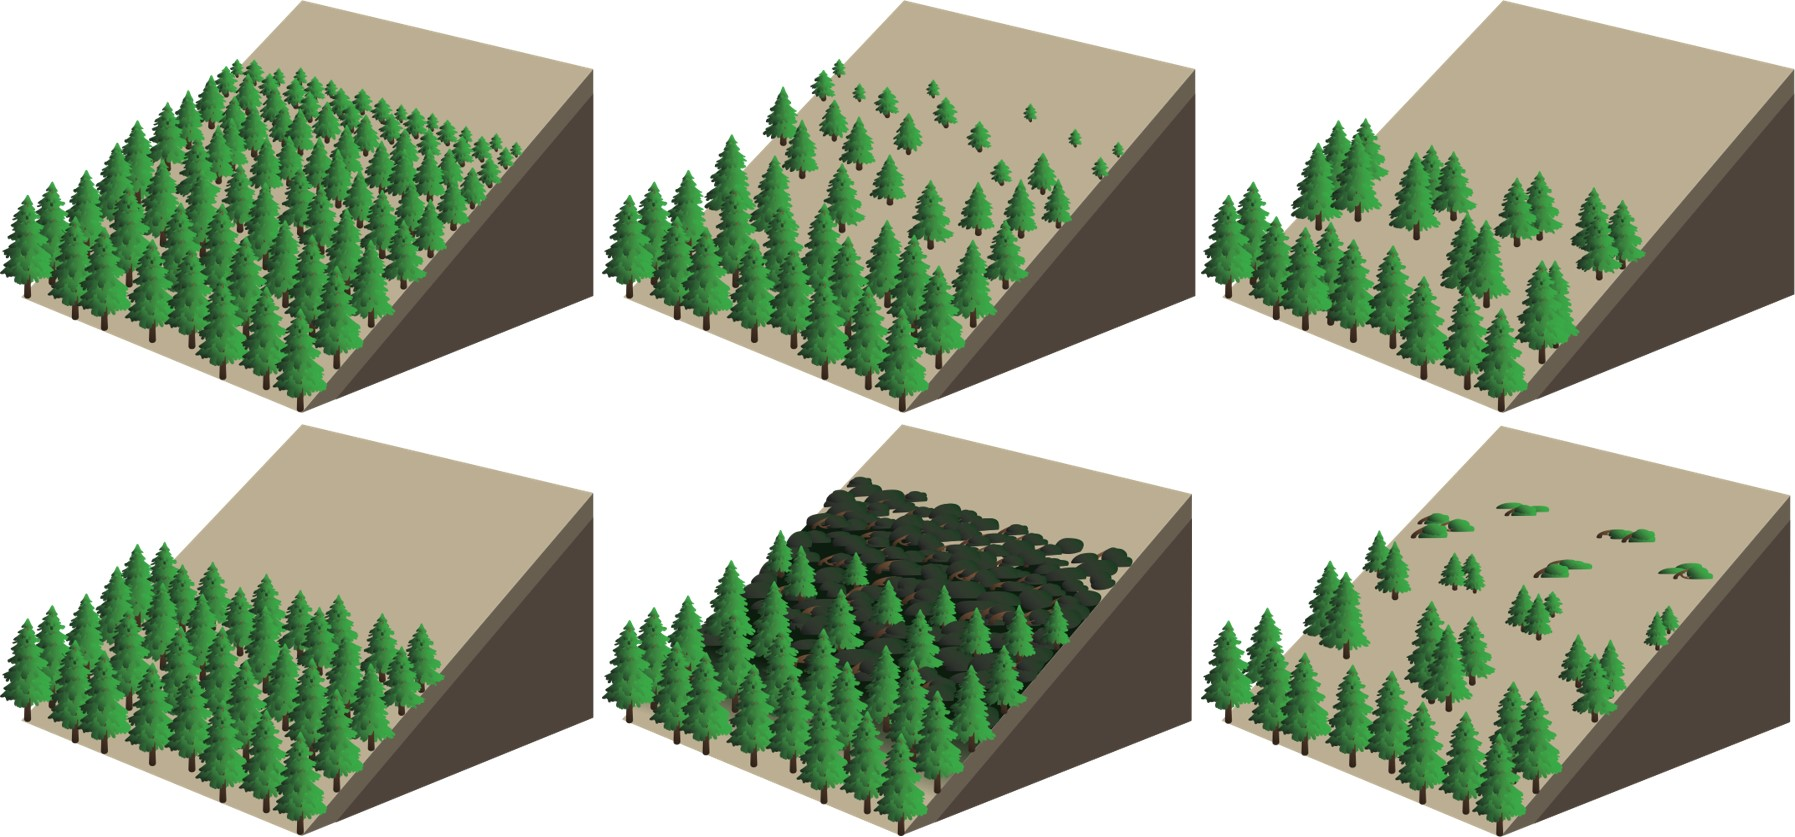 Six examples of distinct treeline forms